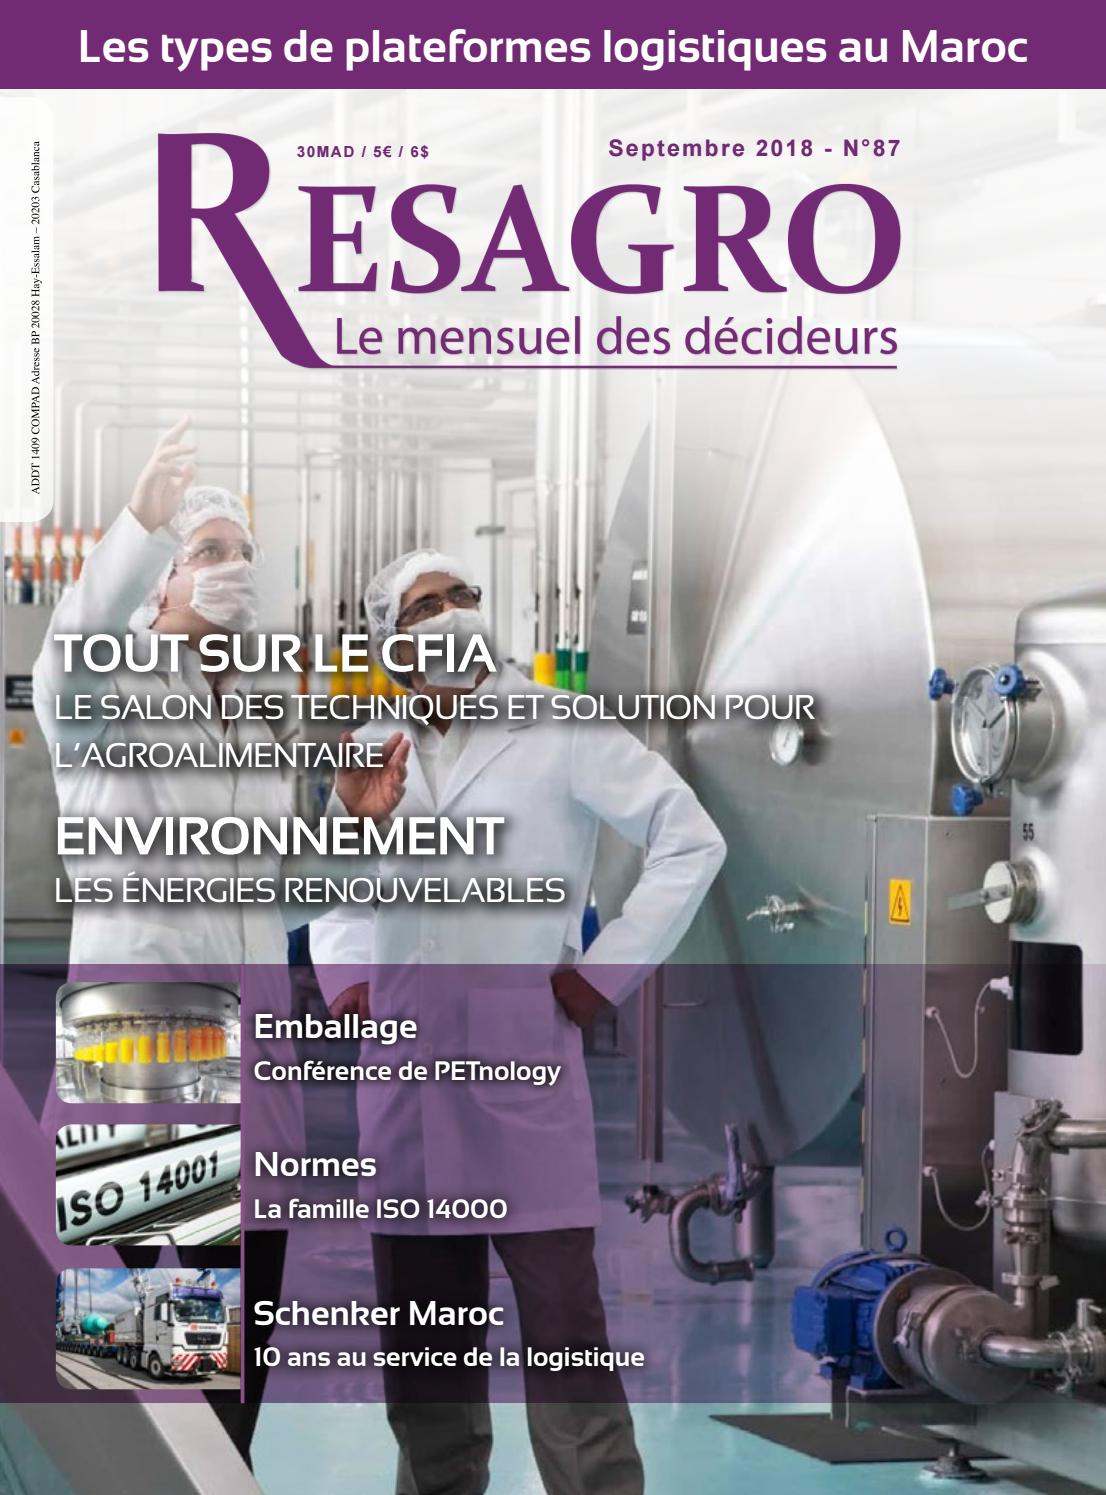 Resagro Resagro Resagro By 87 Issuu By Magazine Magazine 87 87 Issuu cR4Ajq35L